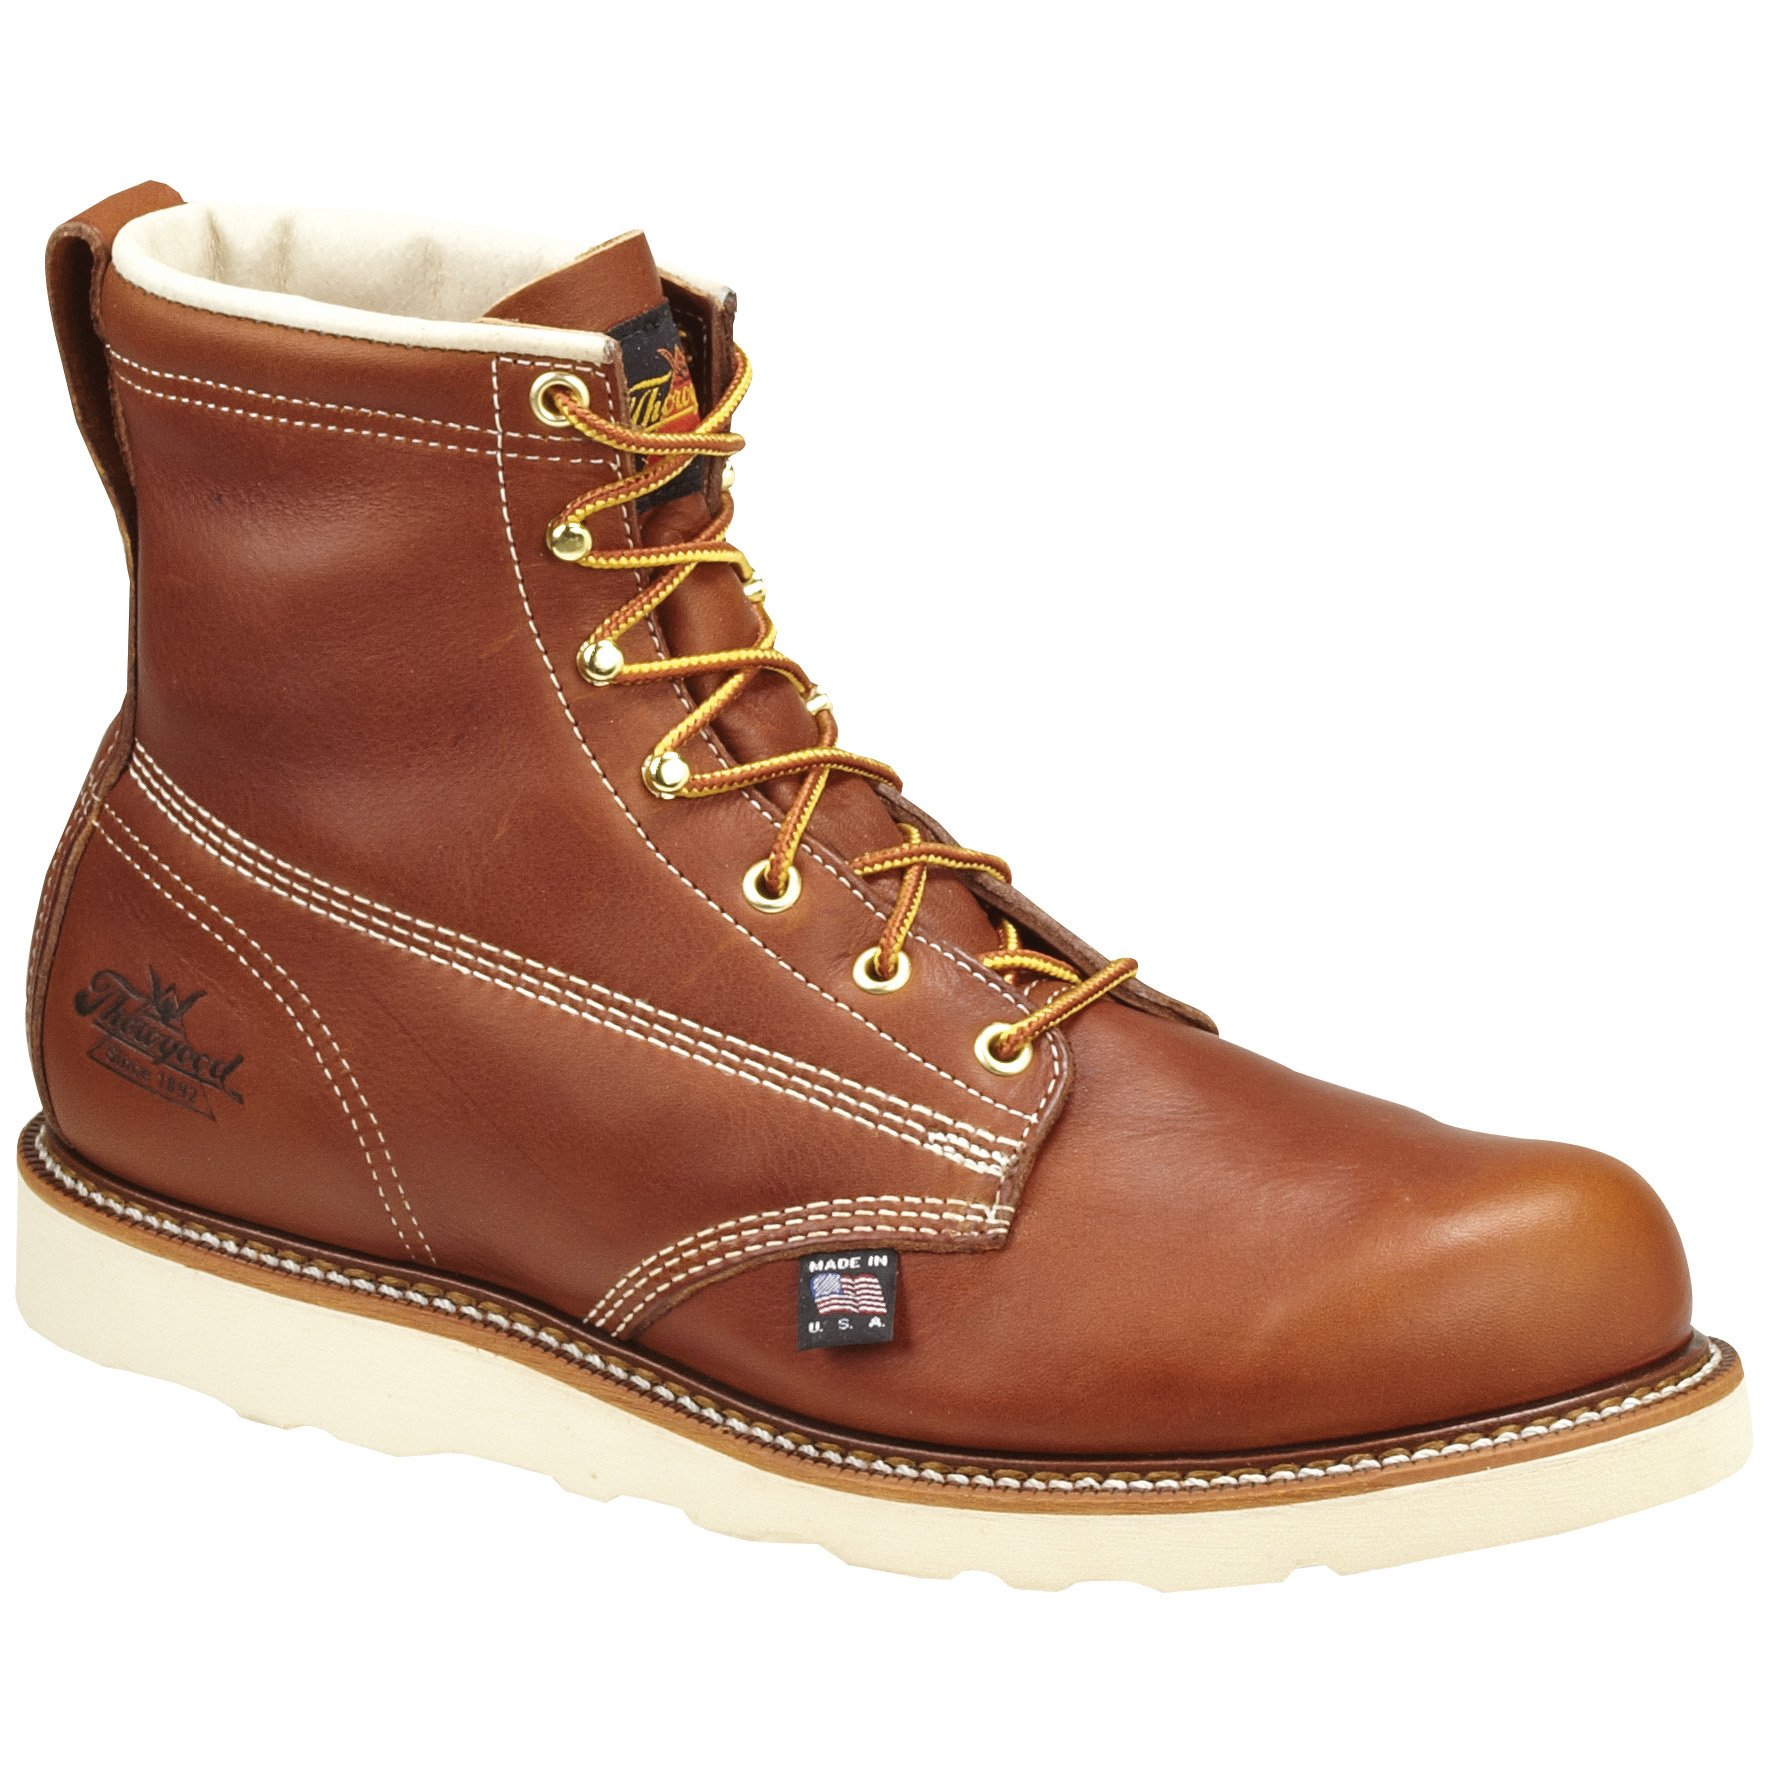 Men's Thorogood 6'' Emperor Toe Composite Safety Toe Work Boot Brown, Tobacco, 11 2E